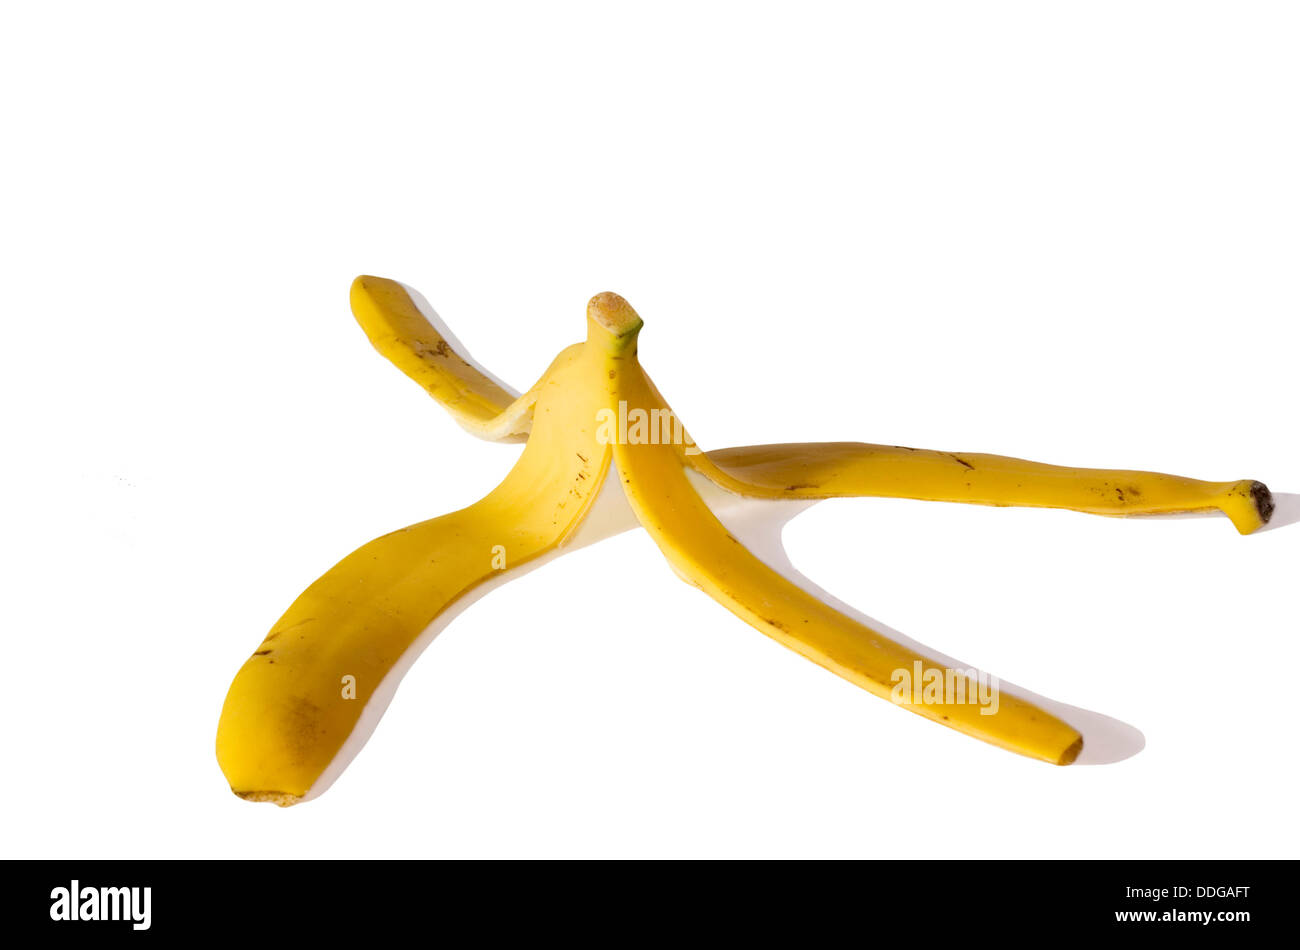 Banana peel - Stock Image